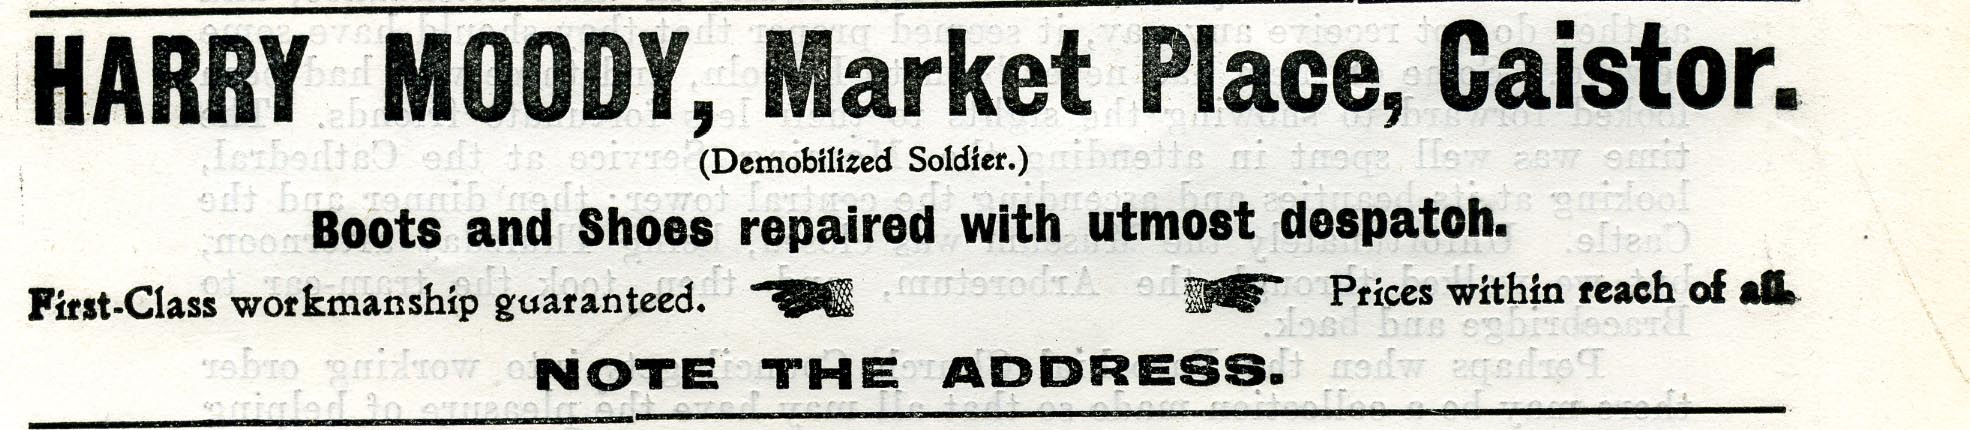 Advert 1917 approx Harry Moody.jpg